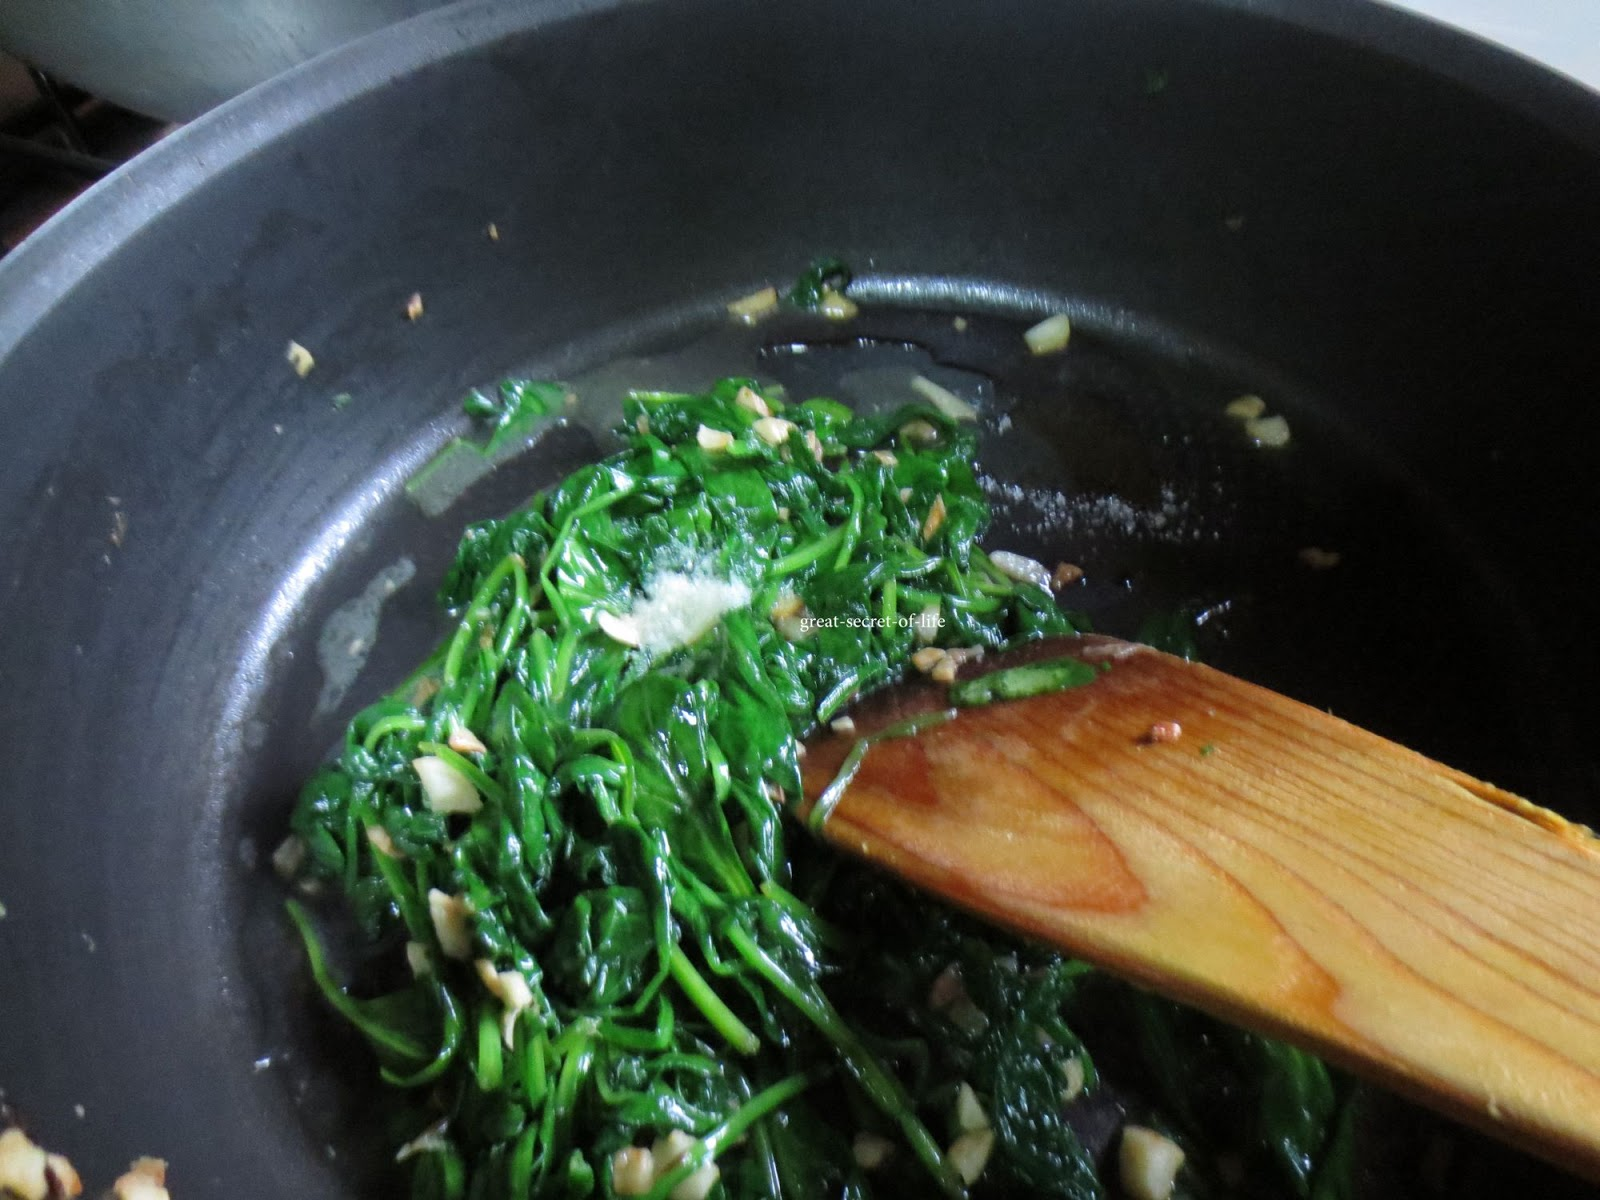 Spinach Garlic with Sesame Seeds| Great-secret-of-life